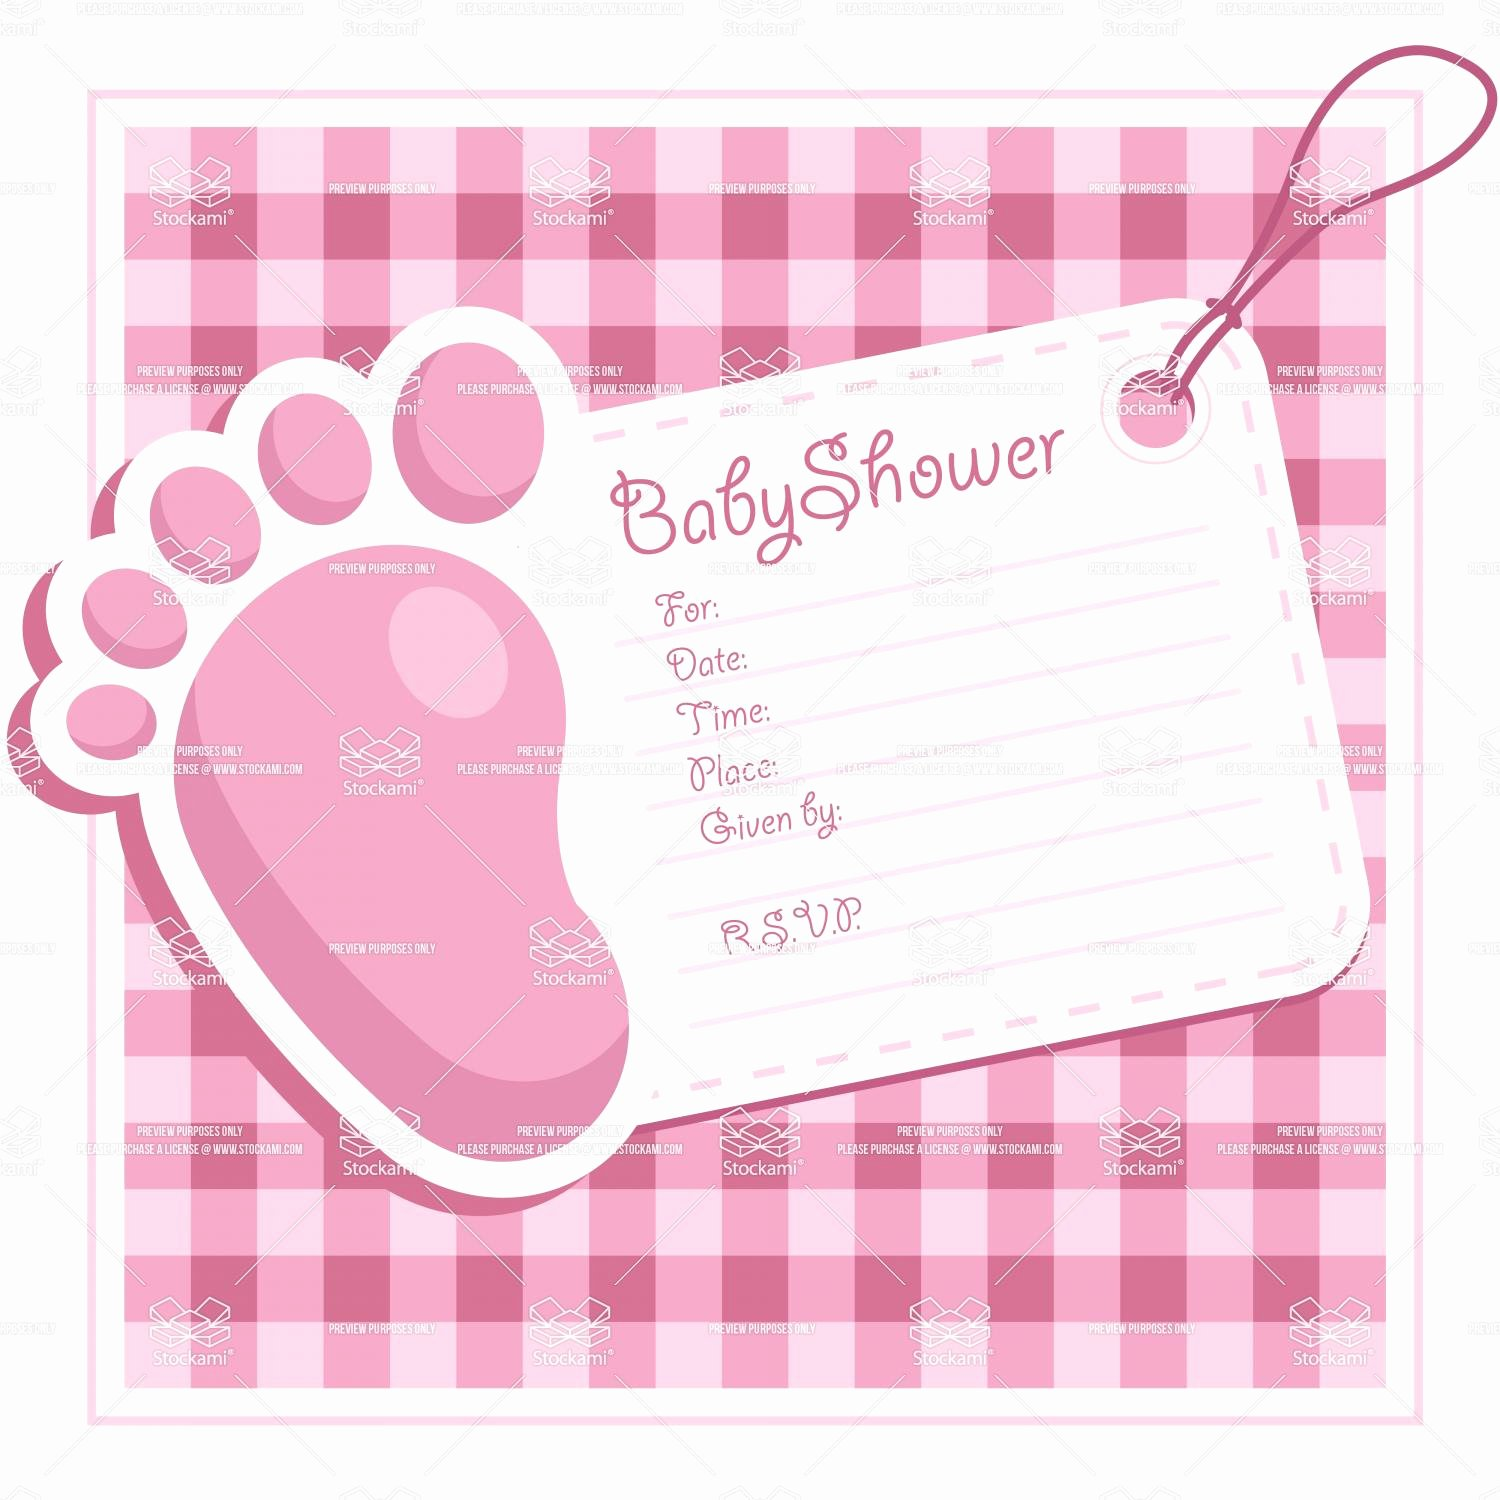 Baby Shower Template Word Awesome Free Printable Baby Shower Invitations Templates Bridal